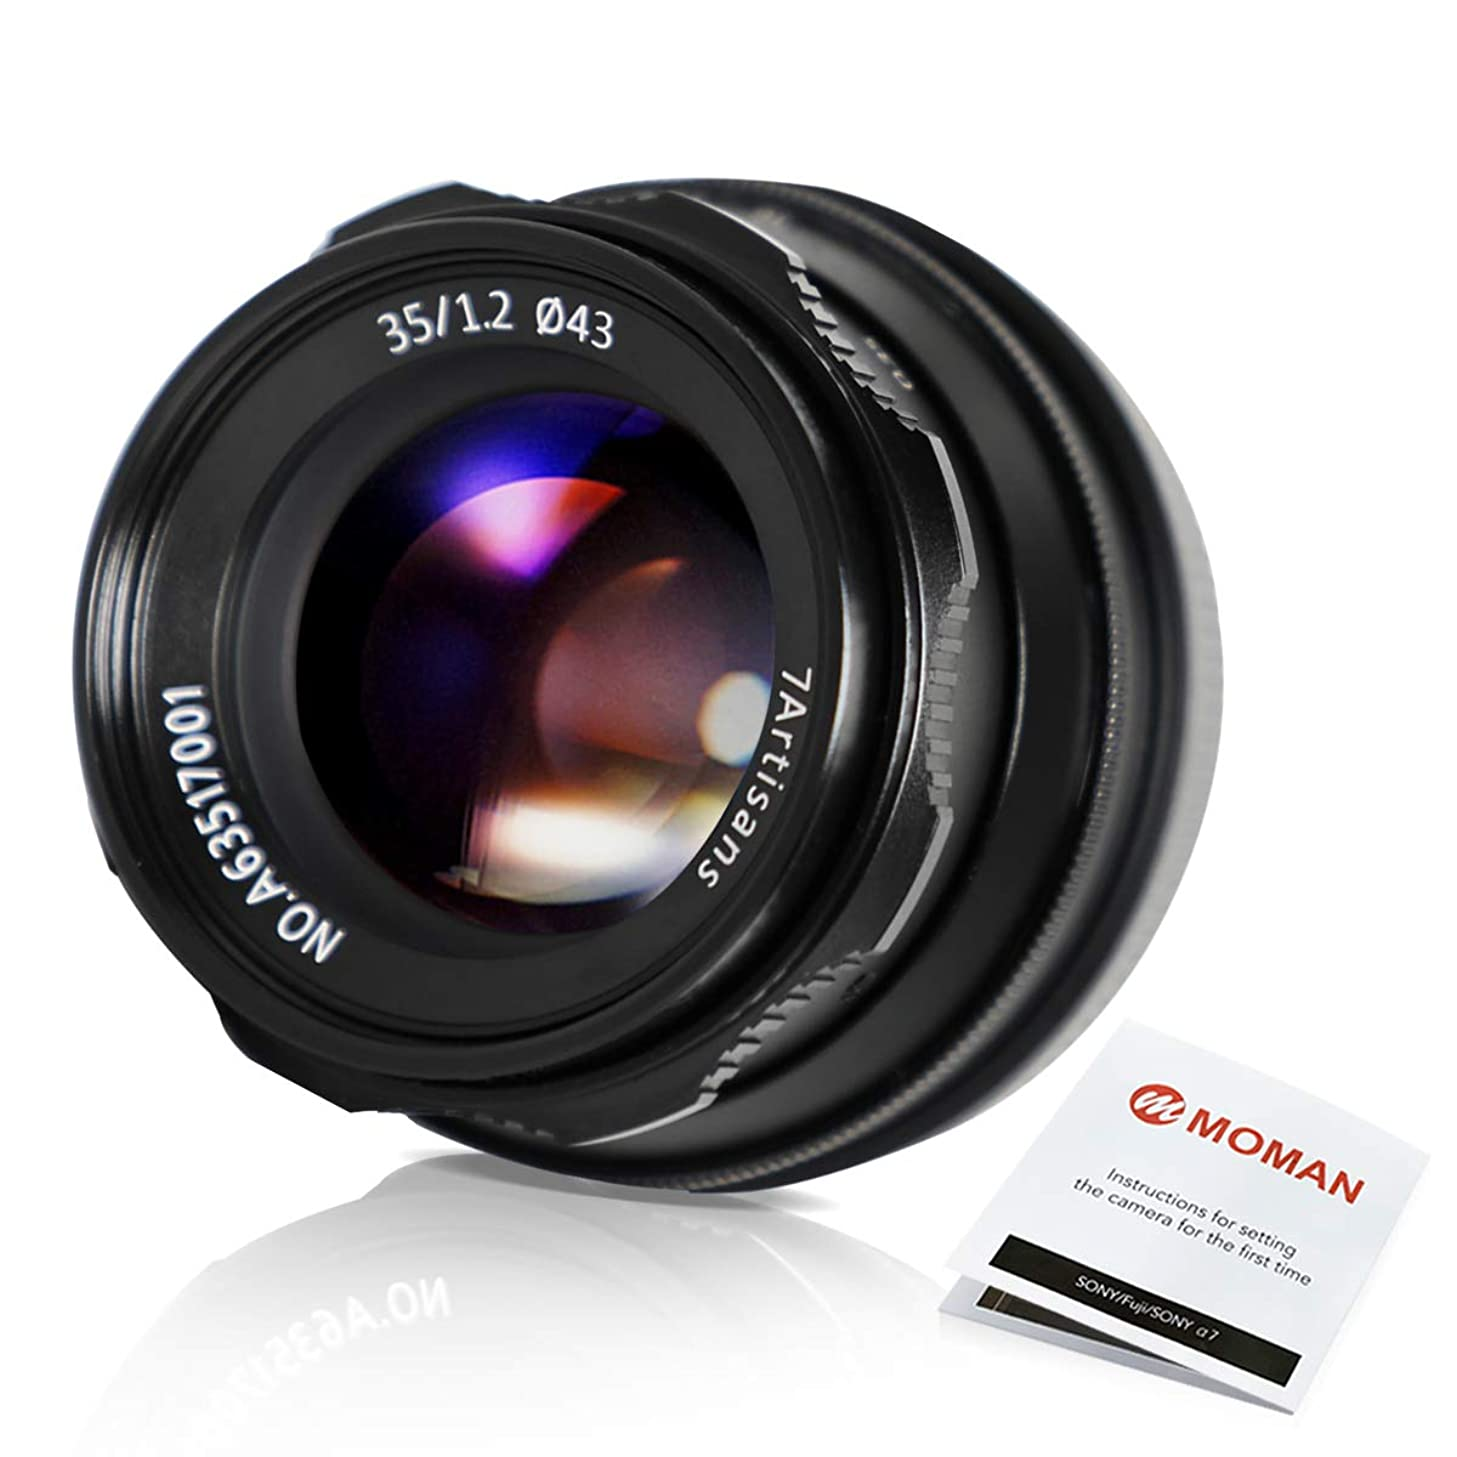 7artisans 35mm F1.2 APS-C Large Aperture Manual Focus Prime Fixed Lens for Mirrorless Cameras with Sony E Mount